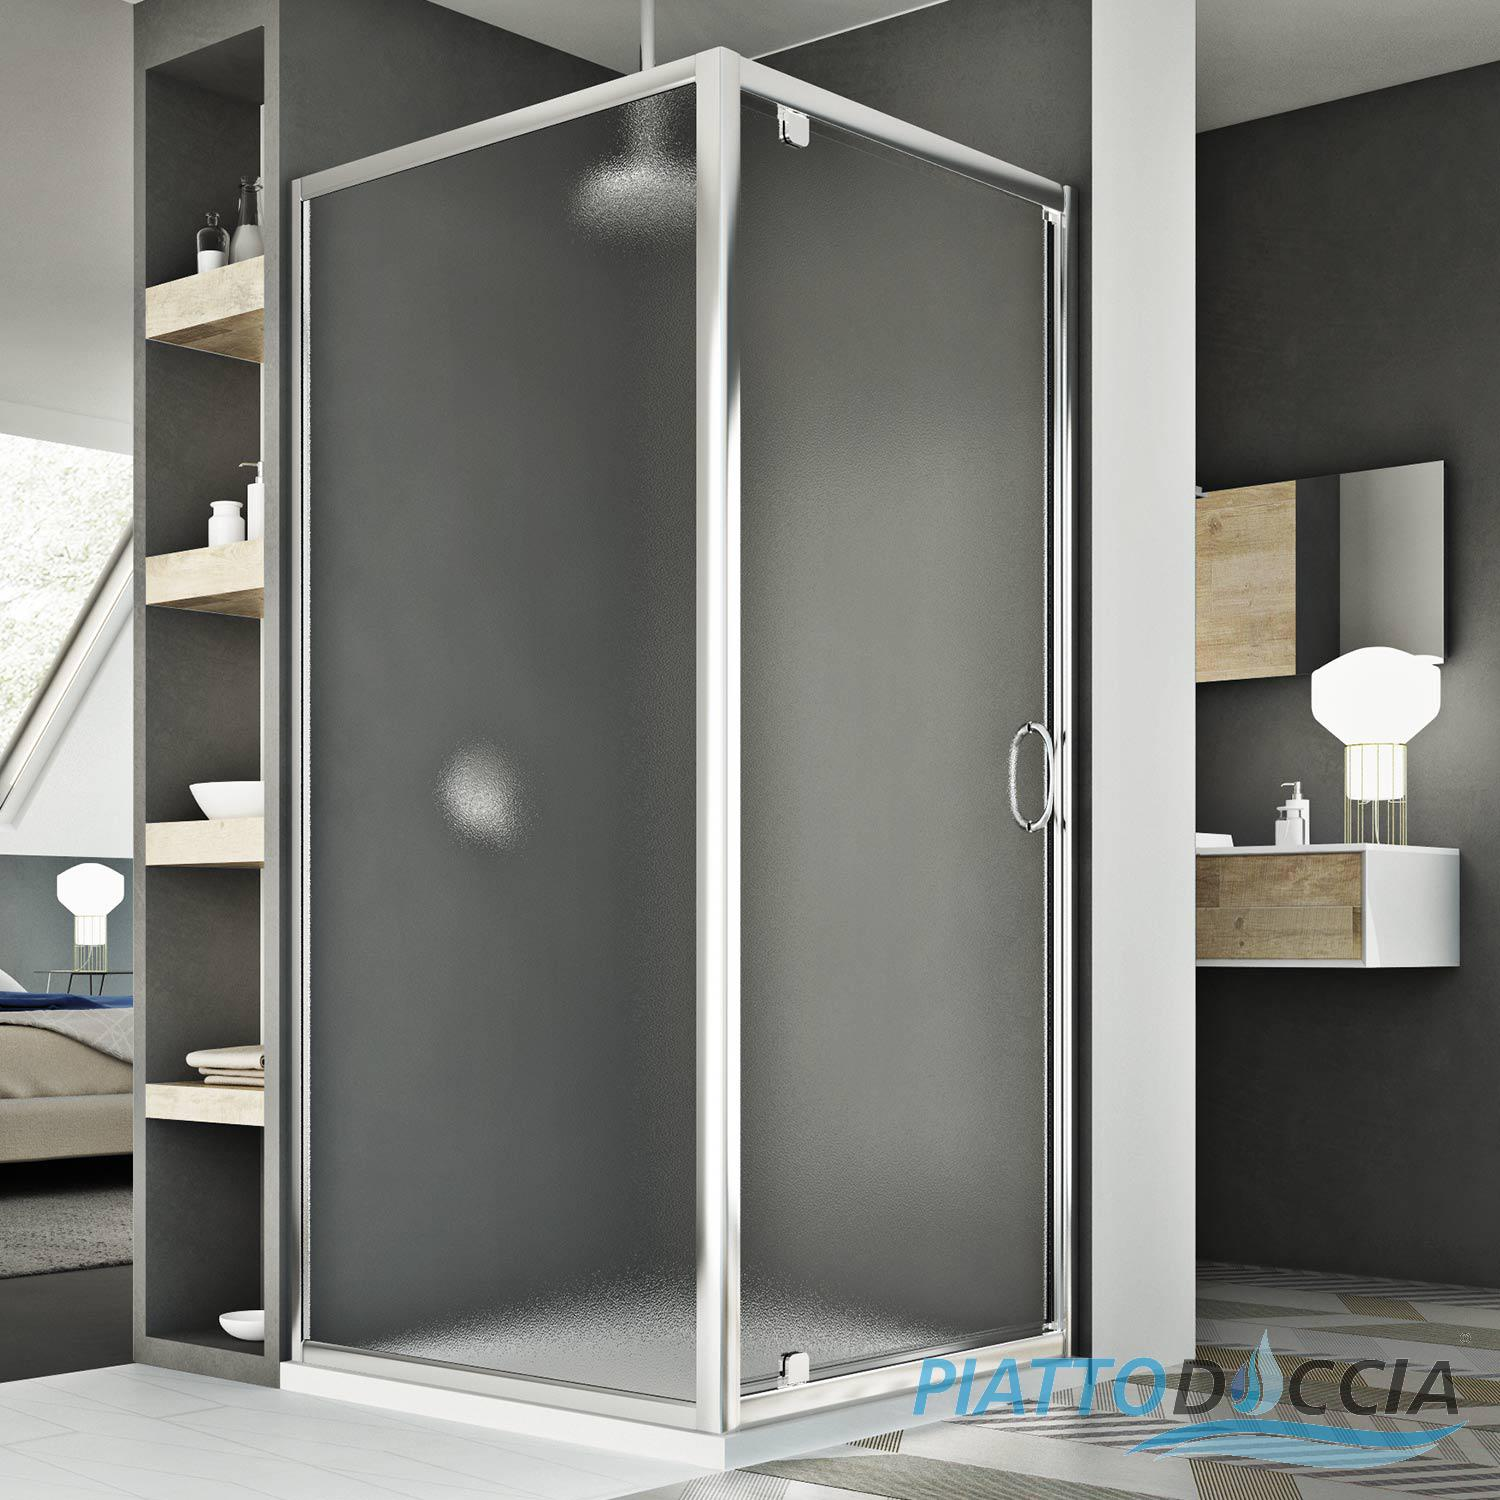 cabine de douche en verre ouverture angulaire porte unique pivot ebay. Black Bedroom Furniture Sets. Home Design Ideas